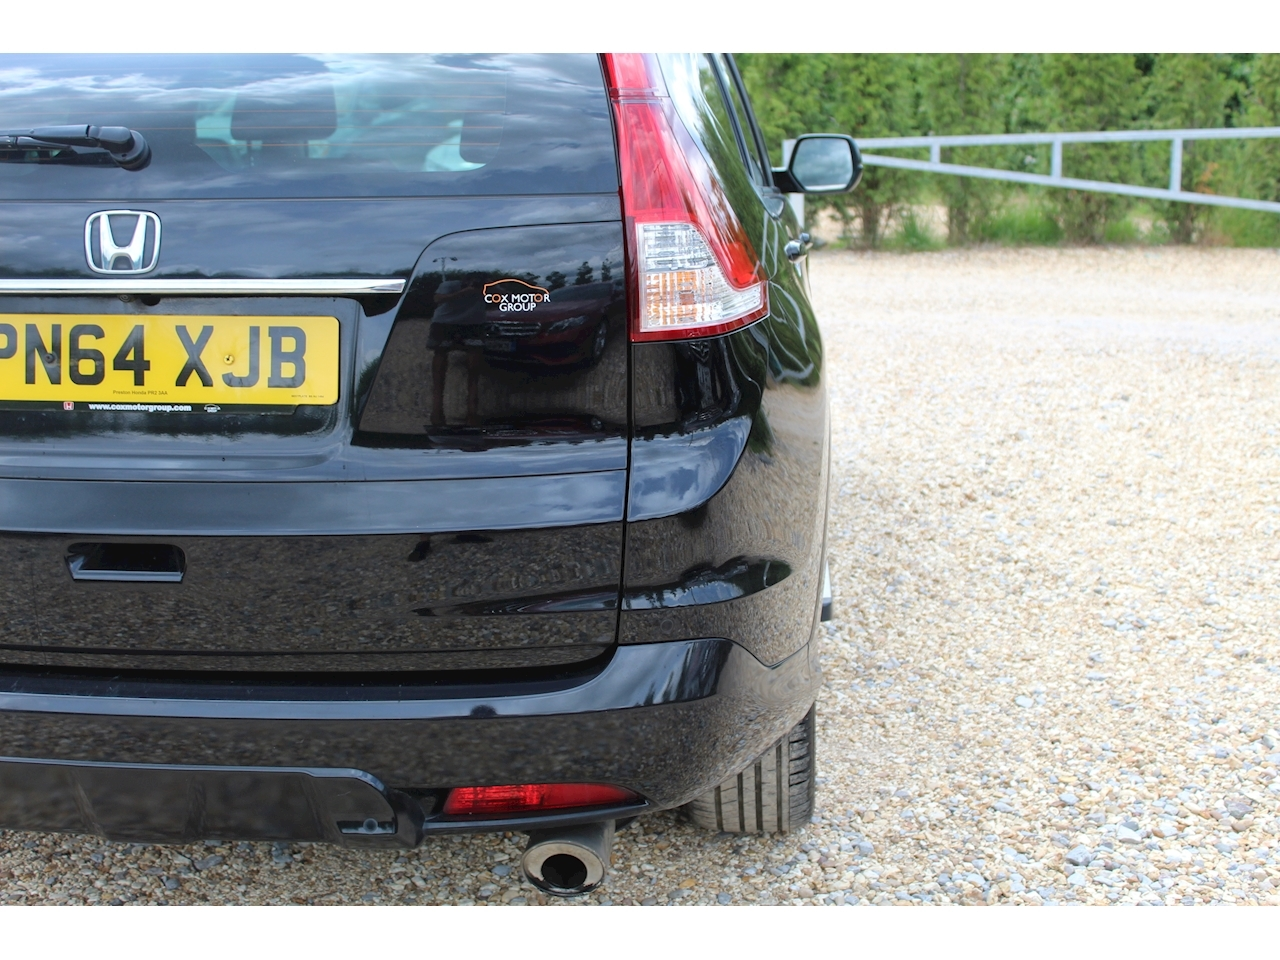 Honda Cr-V I-Vtec Black Edition 2.0 5dr Estate Manual Petrol